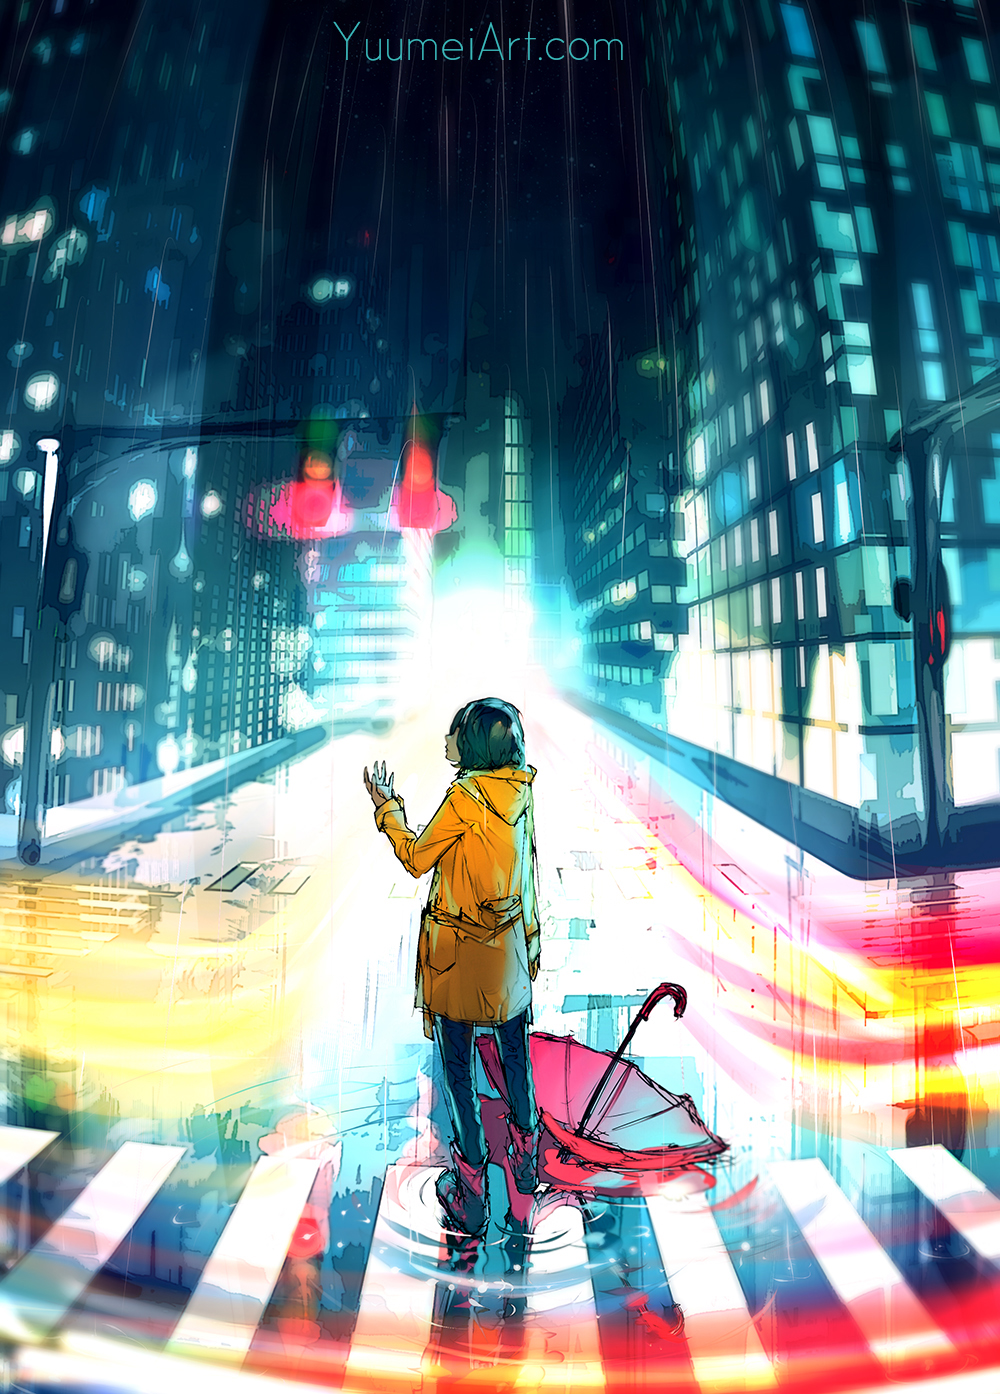 http://orig05.deviantart.net/b3b4/f/2015/284/0/5/city_night_speedpaint__tutorial_video_linked__by_yuumei-d9cqqc2.jpg